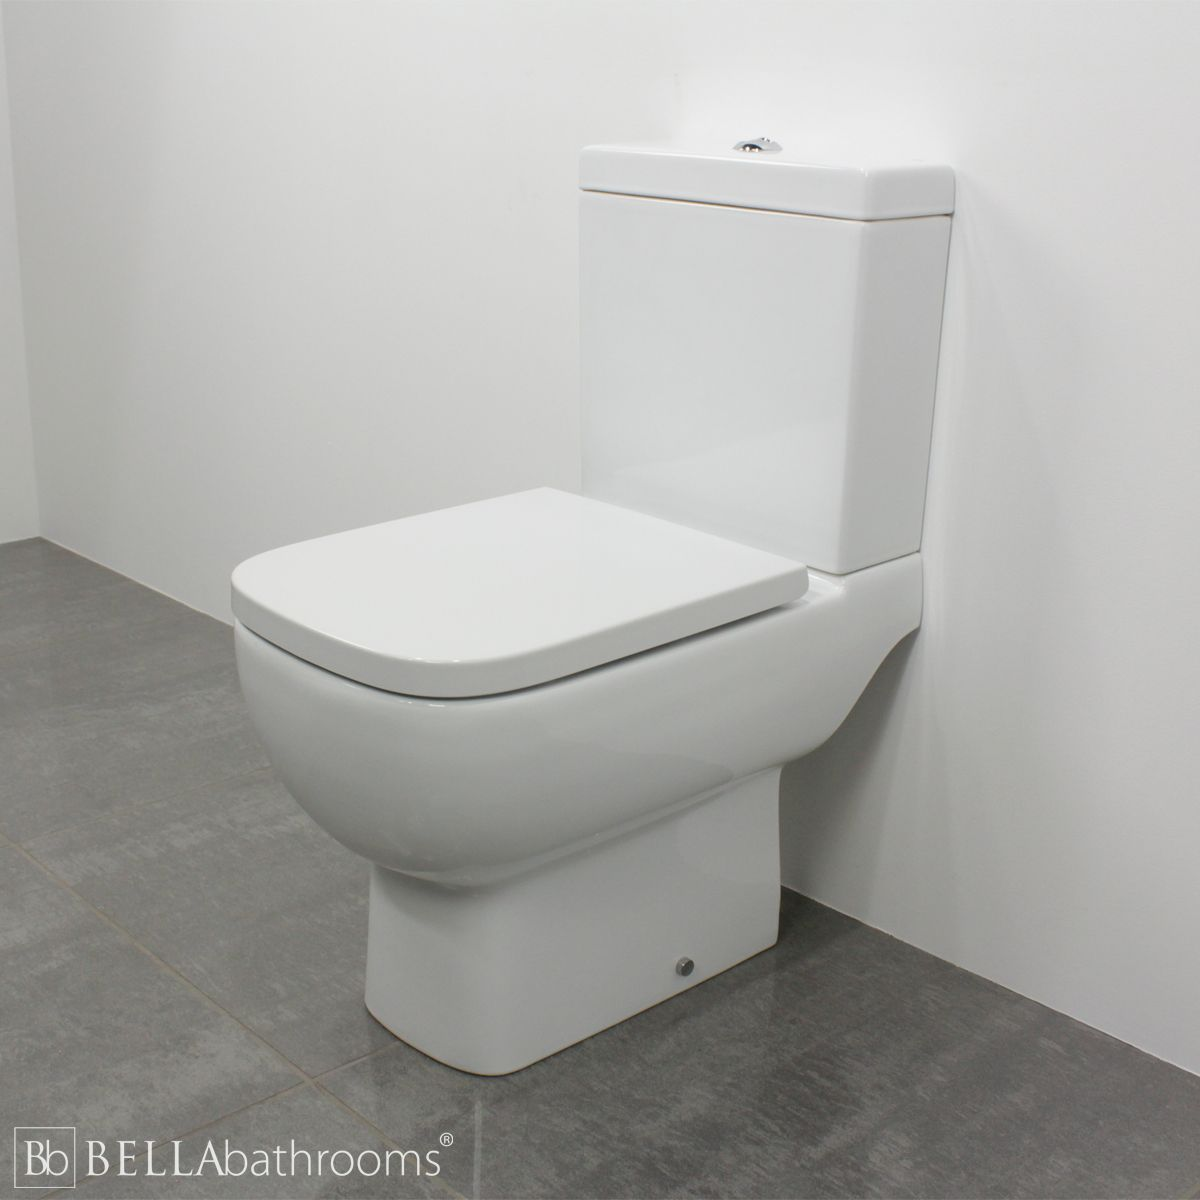 RAK Series 600 Short Projection Toilet 600mm with Slimline Soft Close Seat